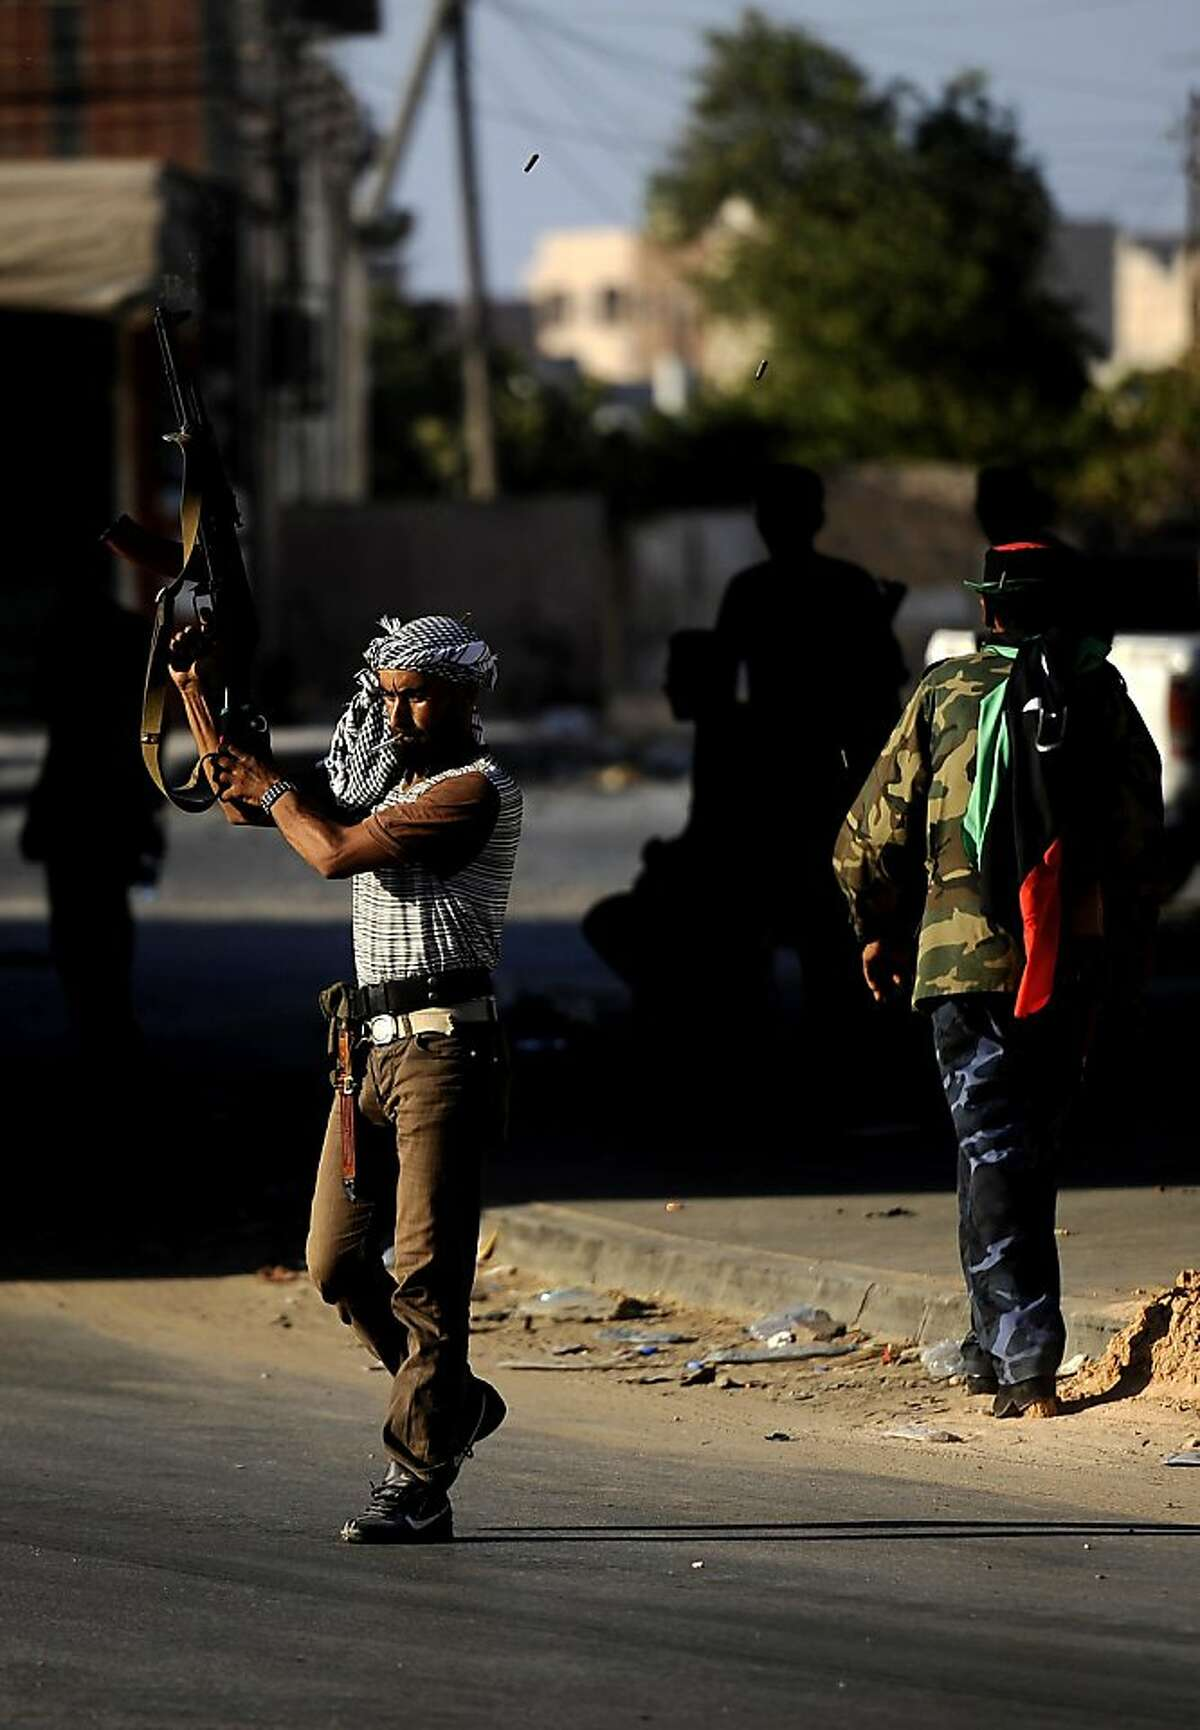 A Libyan rebel fires celebratory shots in the air after gaining positions against regime forces in Zawiya, some 40 kms west of Tripoli, on August 19, 2011. Libyan rebels claimed to have taken two more key objectives in their advance on Tripoli, including the refinery town of Zawiya, as people scrambled to flee the increasingly isolated capital. AFP PHOTO / FILIPPO MONTEFORTE (Photo credit should read FILIPPO MONTEFORTE/AFP/Getty Images)